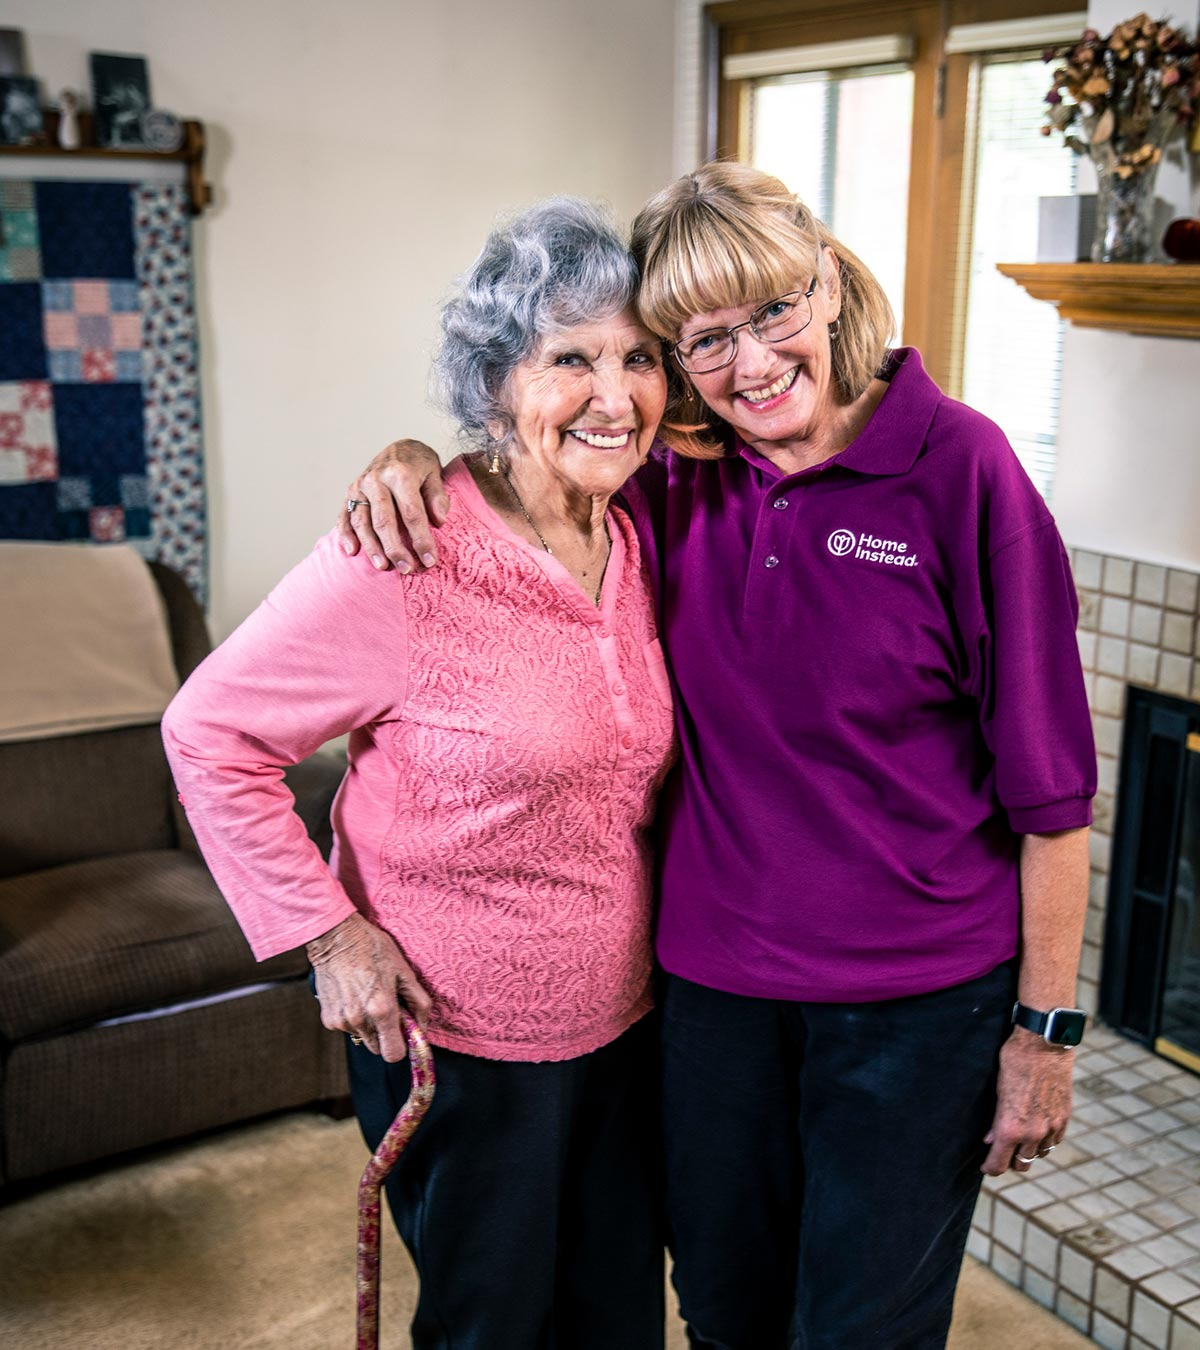 Home Instead CAREGiver and senior standing together smiling in home